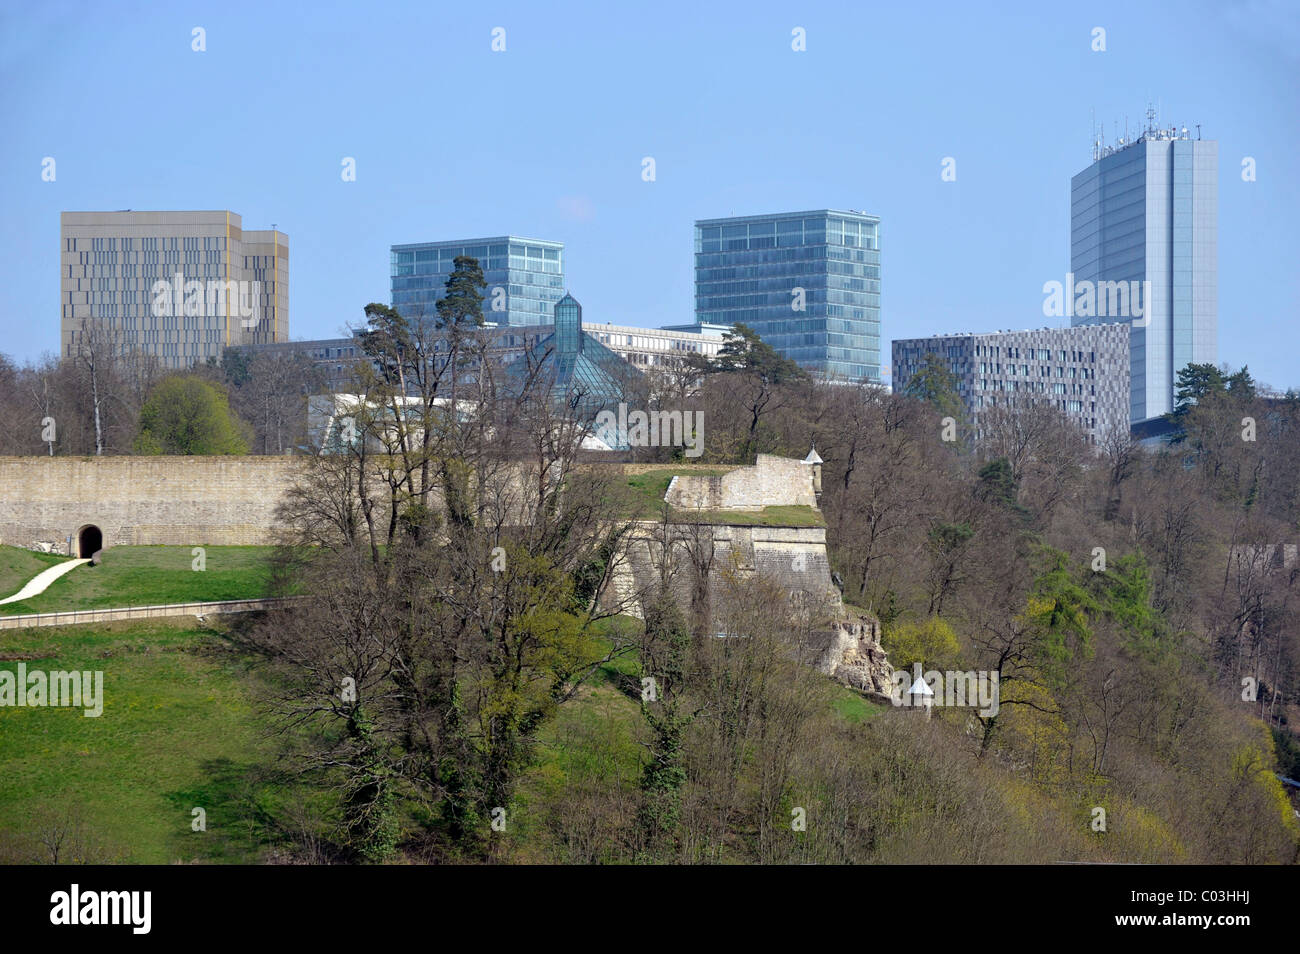 View from Pfaffental district towards Kirchberg district with administrative buildings of the European Union, Luxembourg, - Stock Image